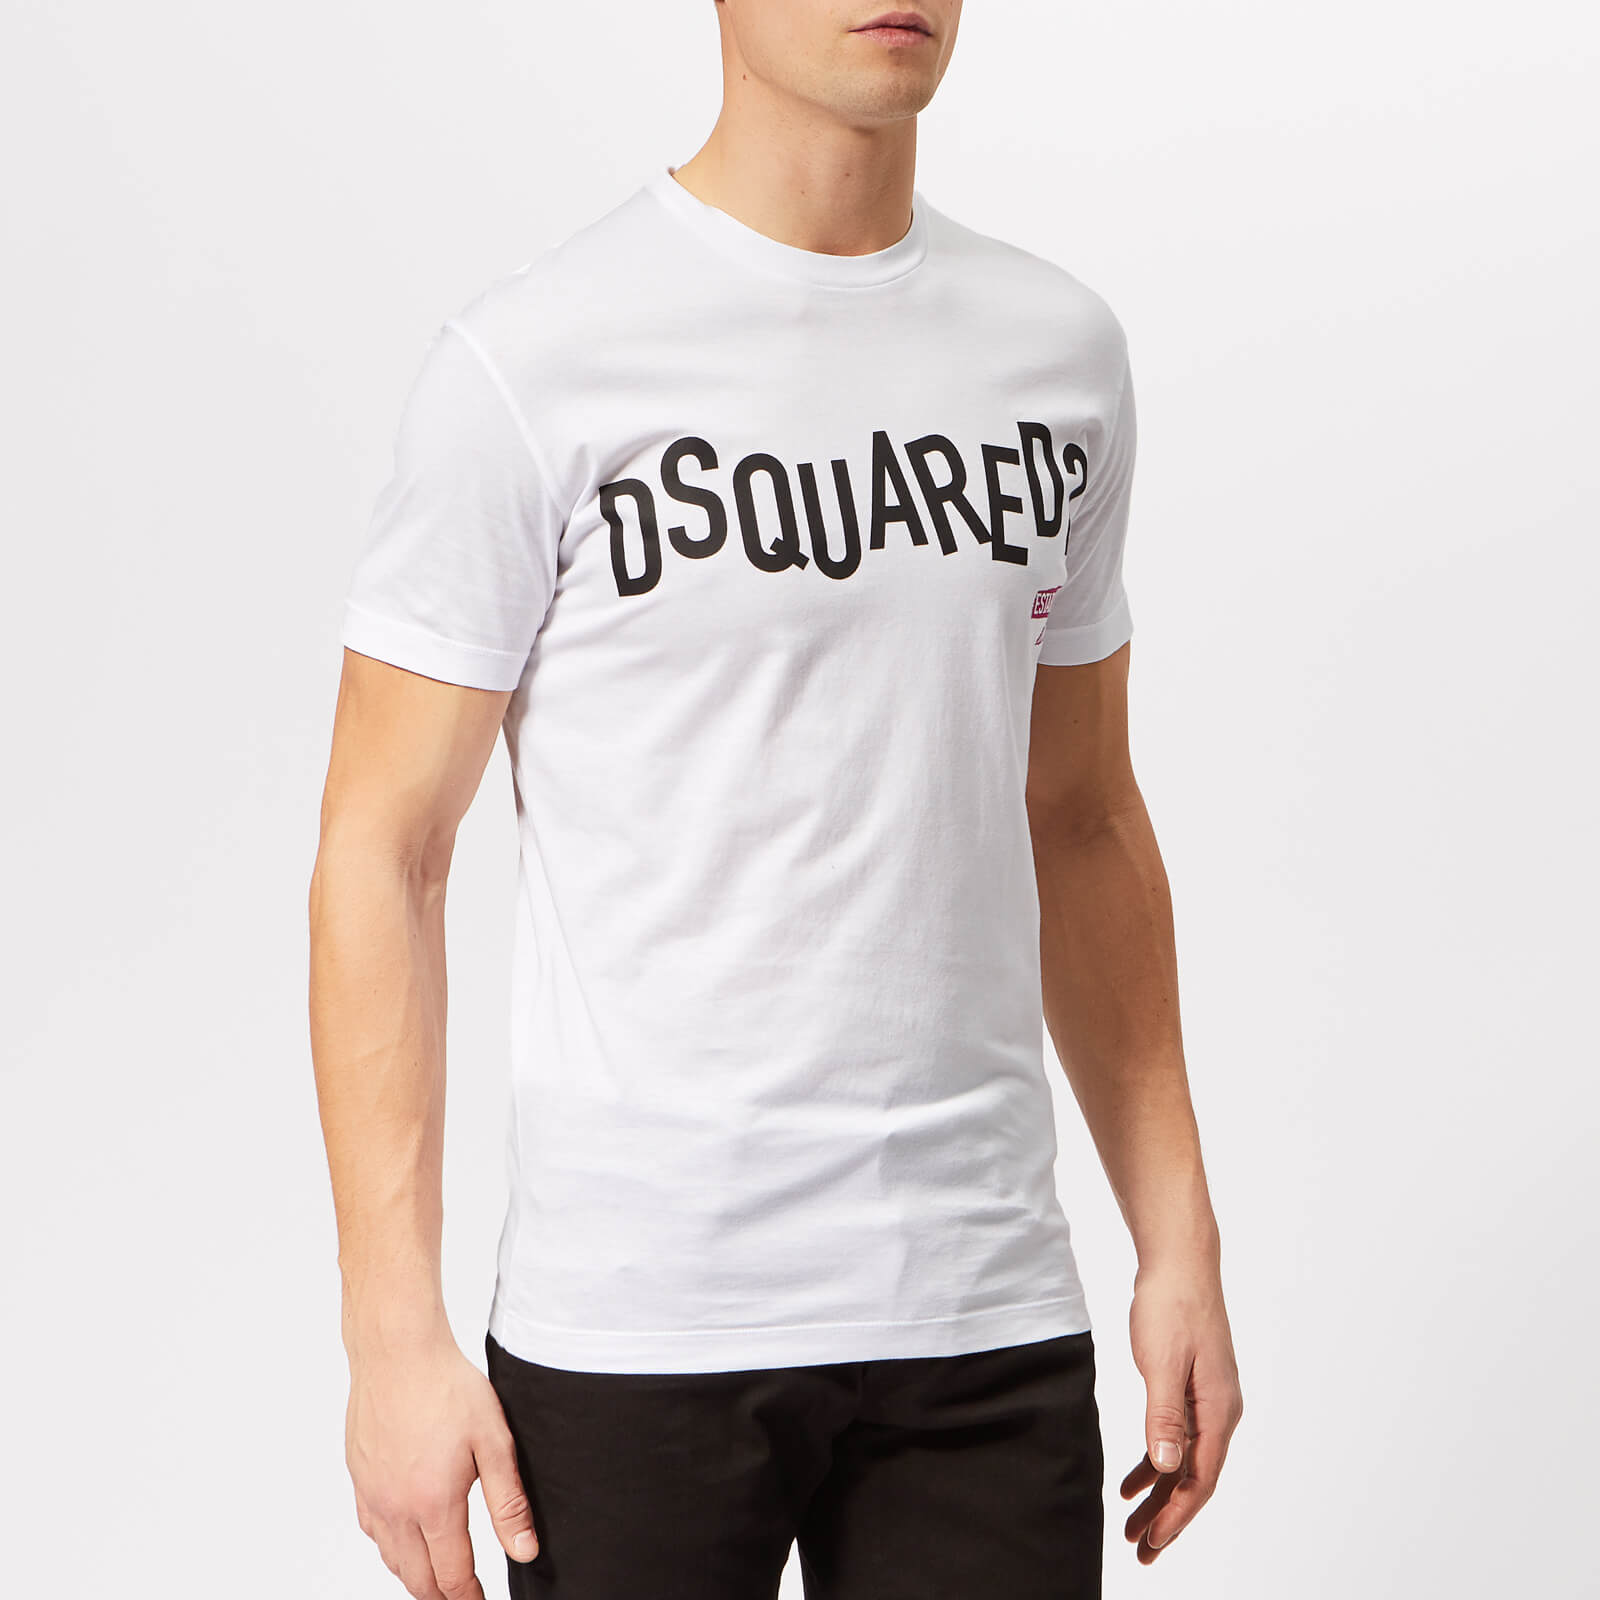 abc2524d1 Dsquared2 Men's Cool Fit Punk Logo T-Shirt - White - Free UK Delivery over £ 50